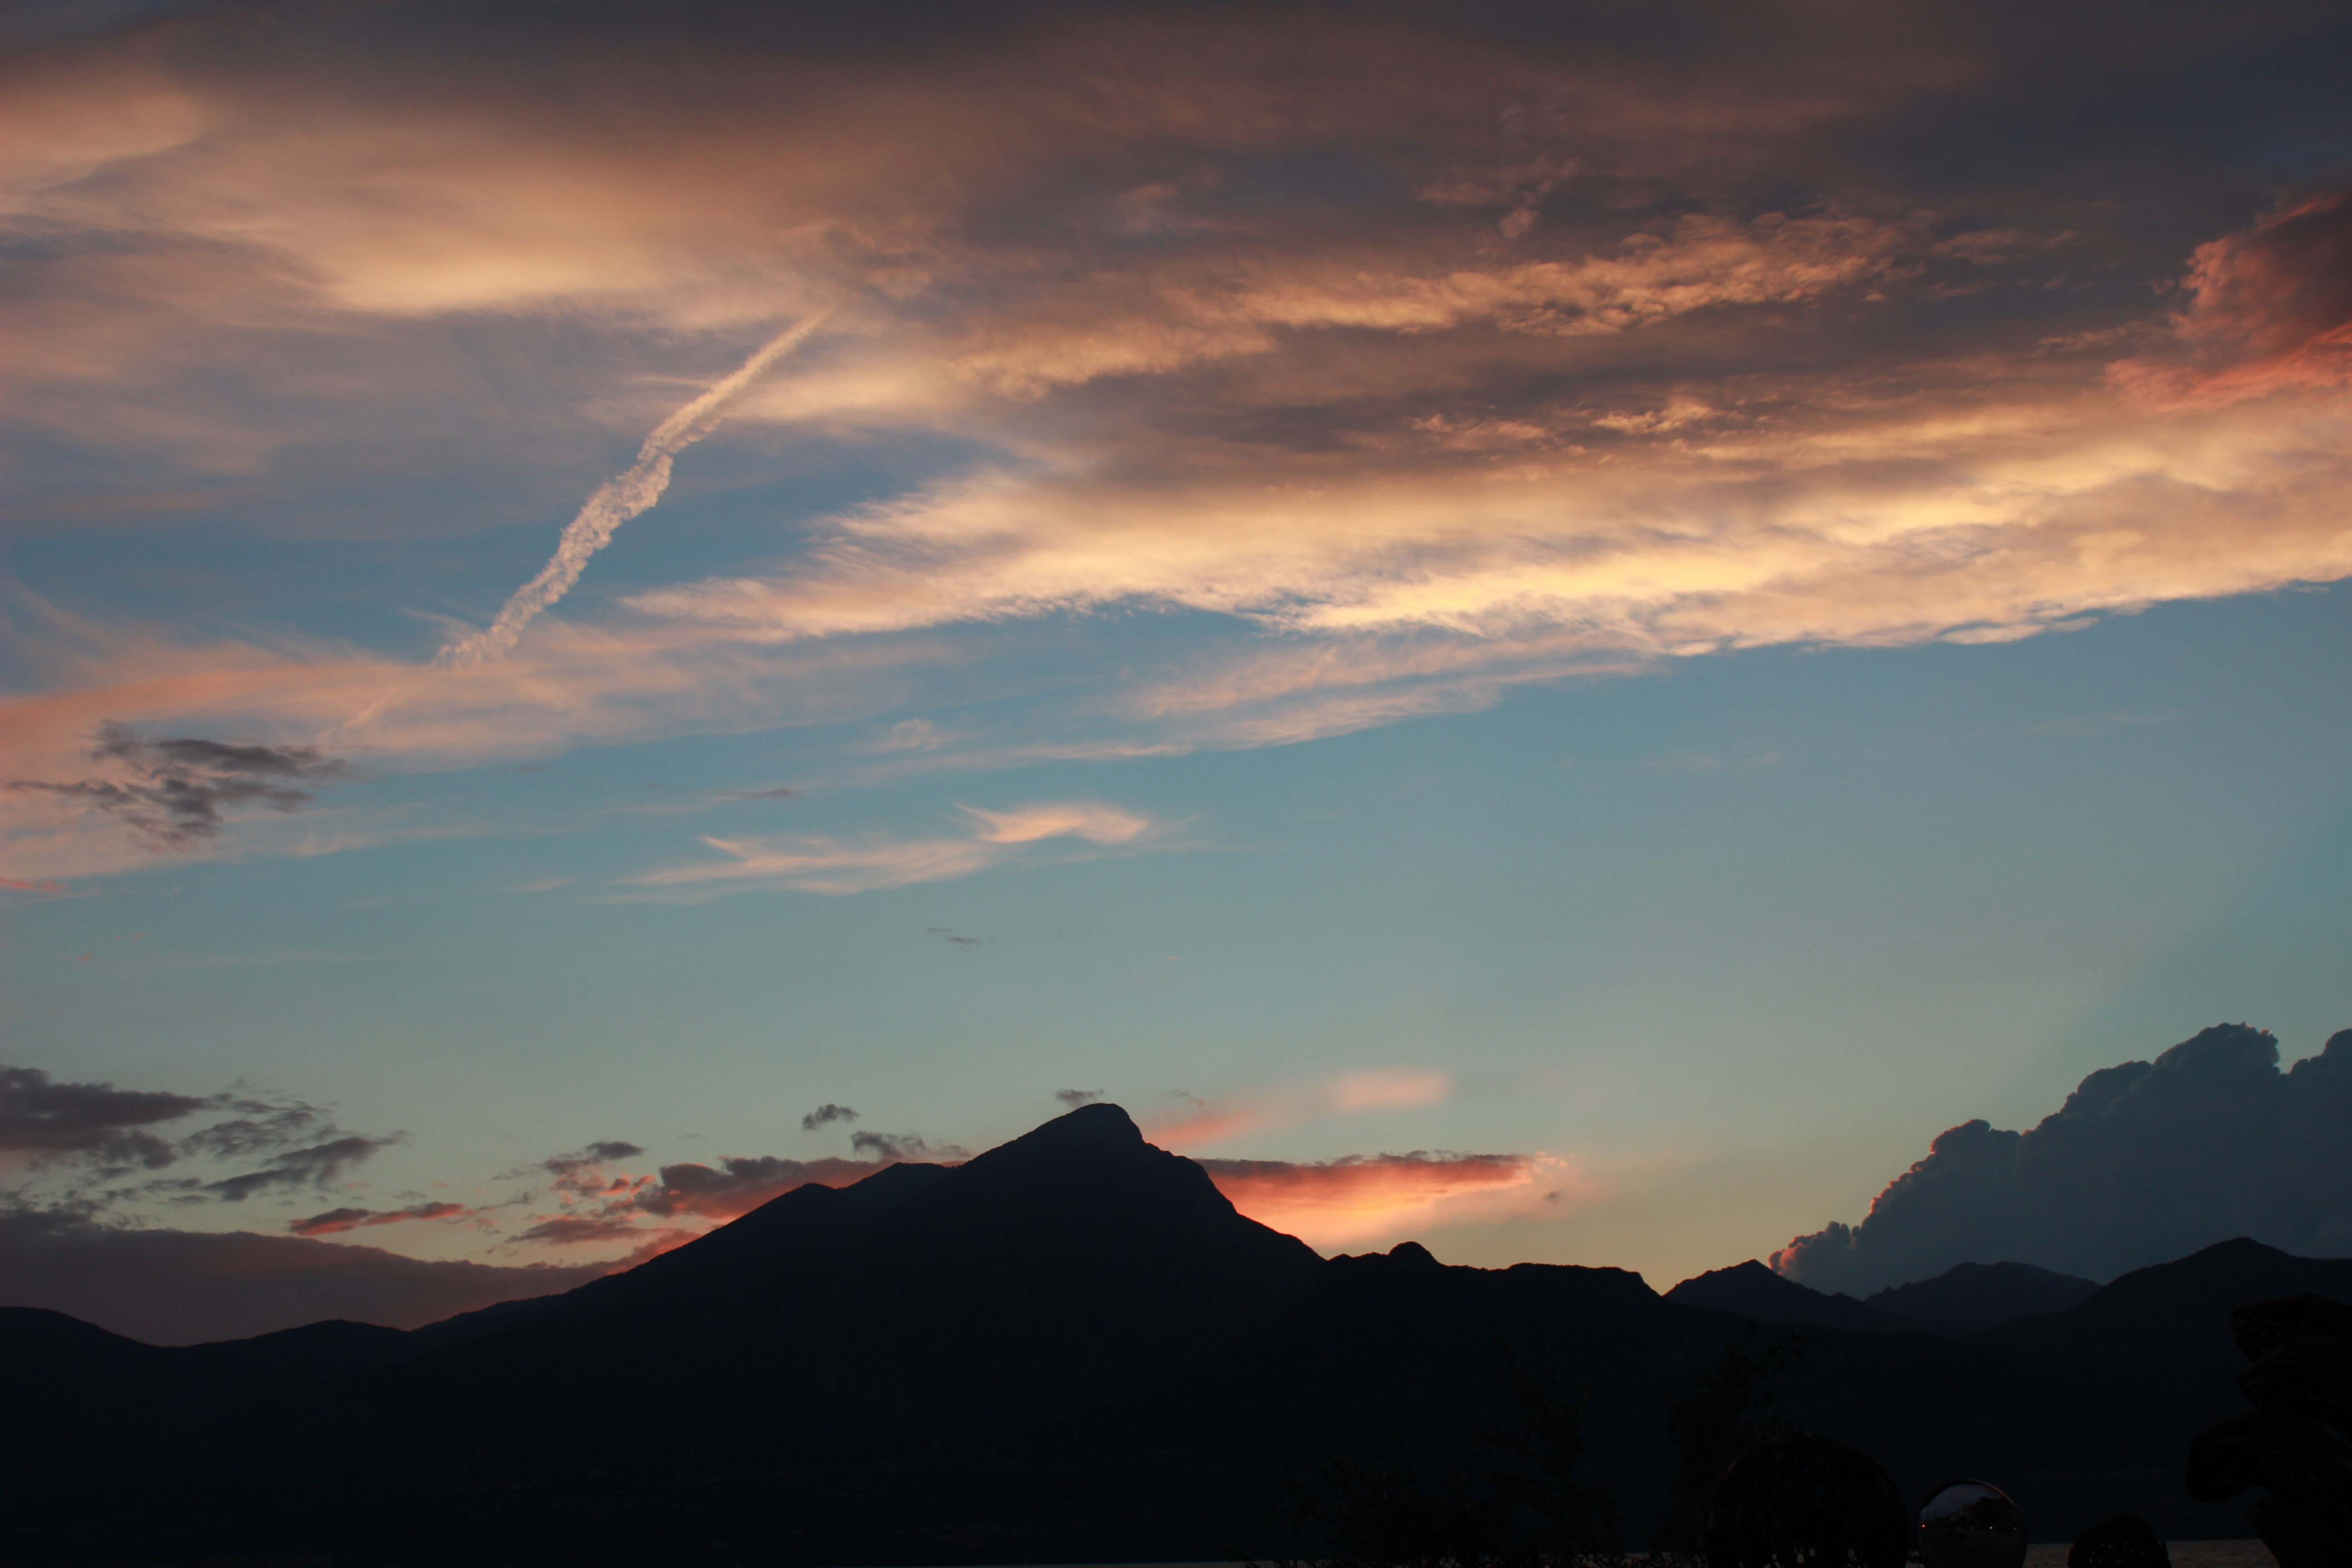 Mountains silhouetted against an evening sky with scattered clouds